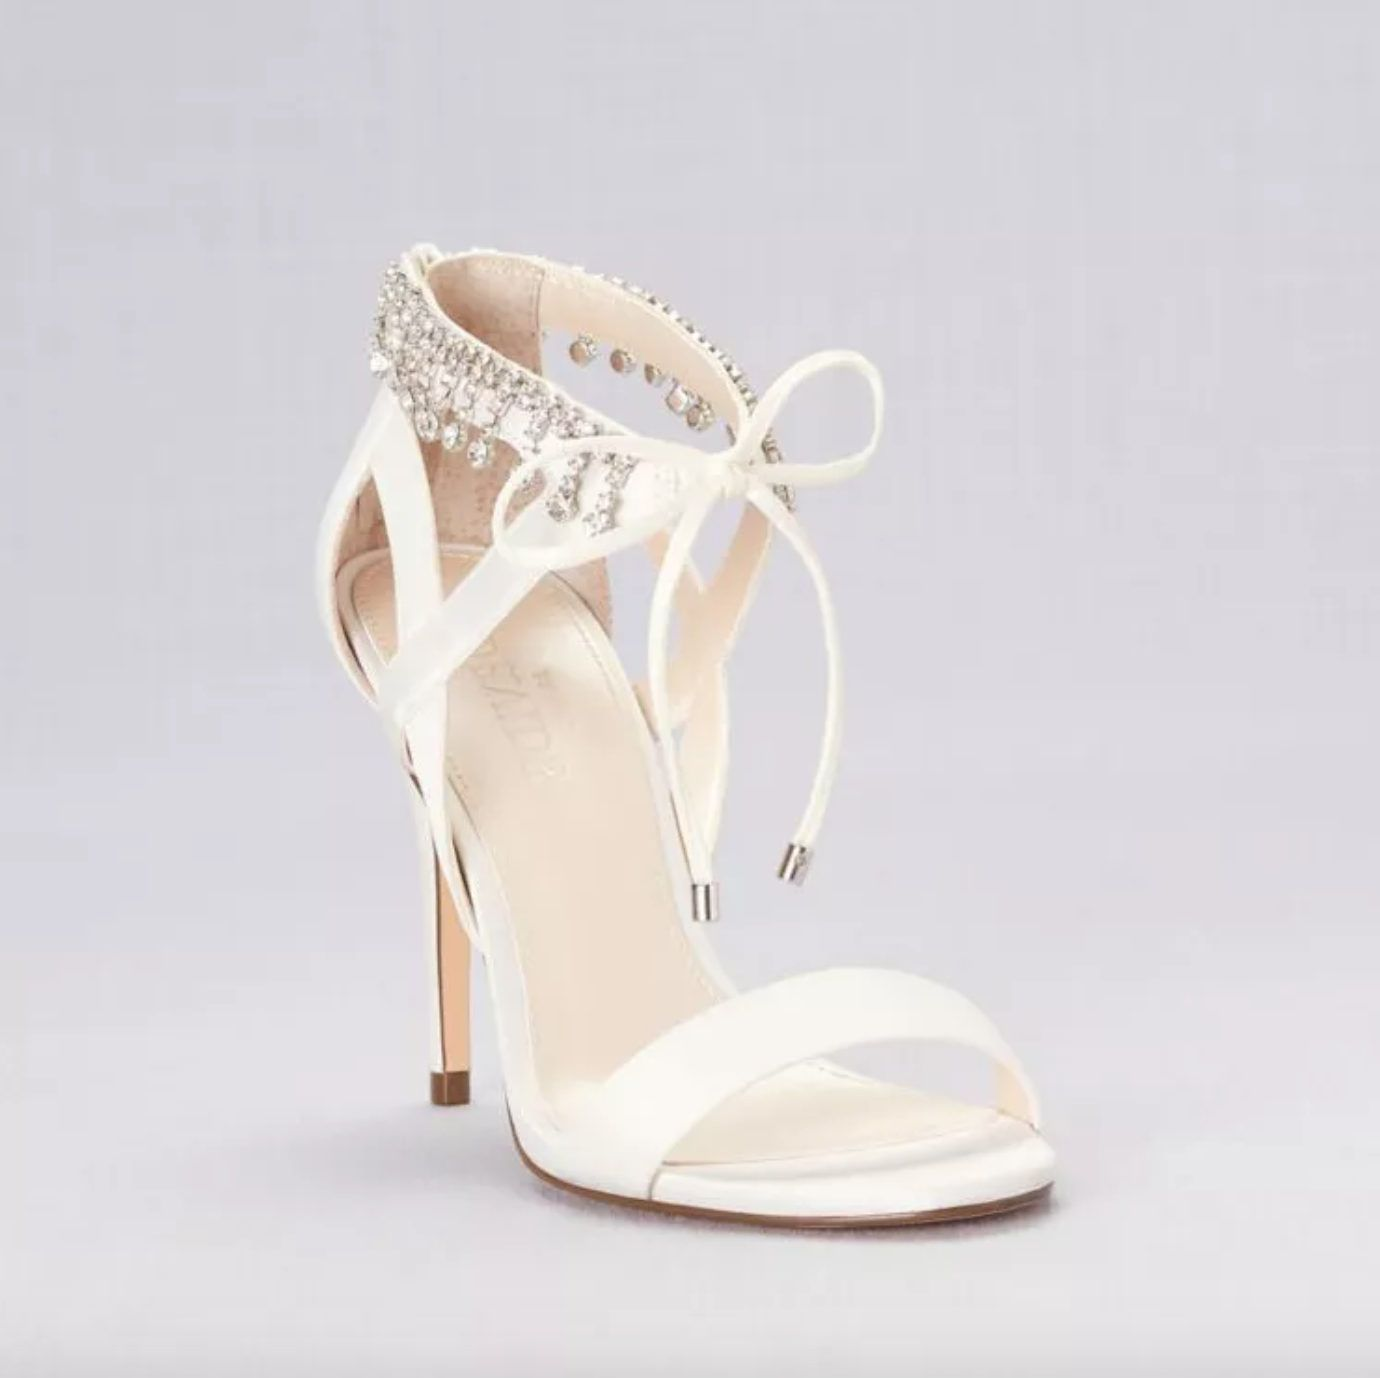 22 Amazing And Affordable Bridal Heels Under 200 In 2020 Bridal Heels Fun Wedding Shoes Bride Shoes